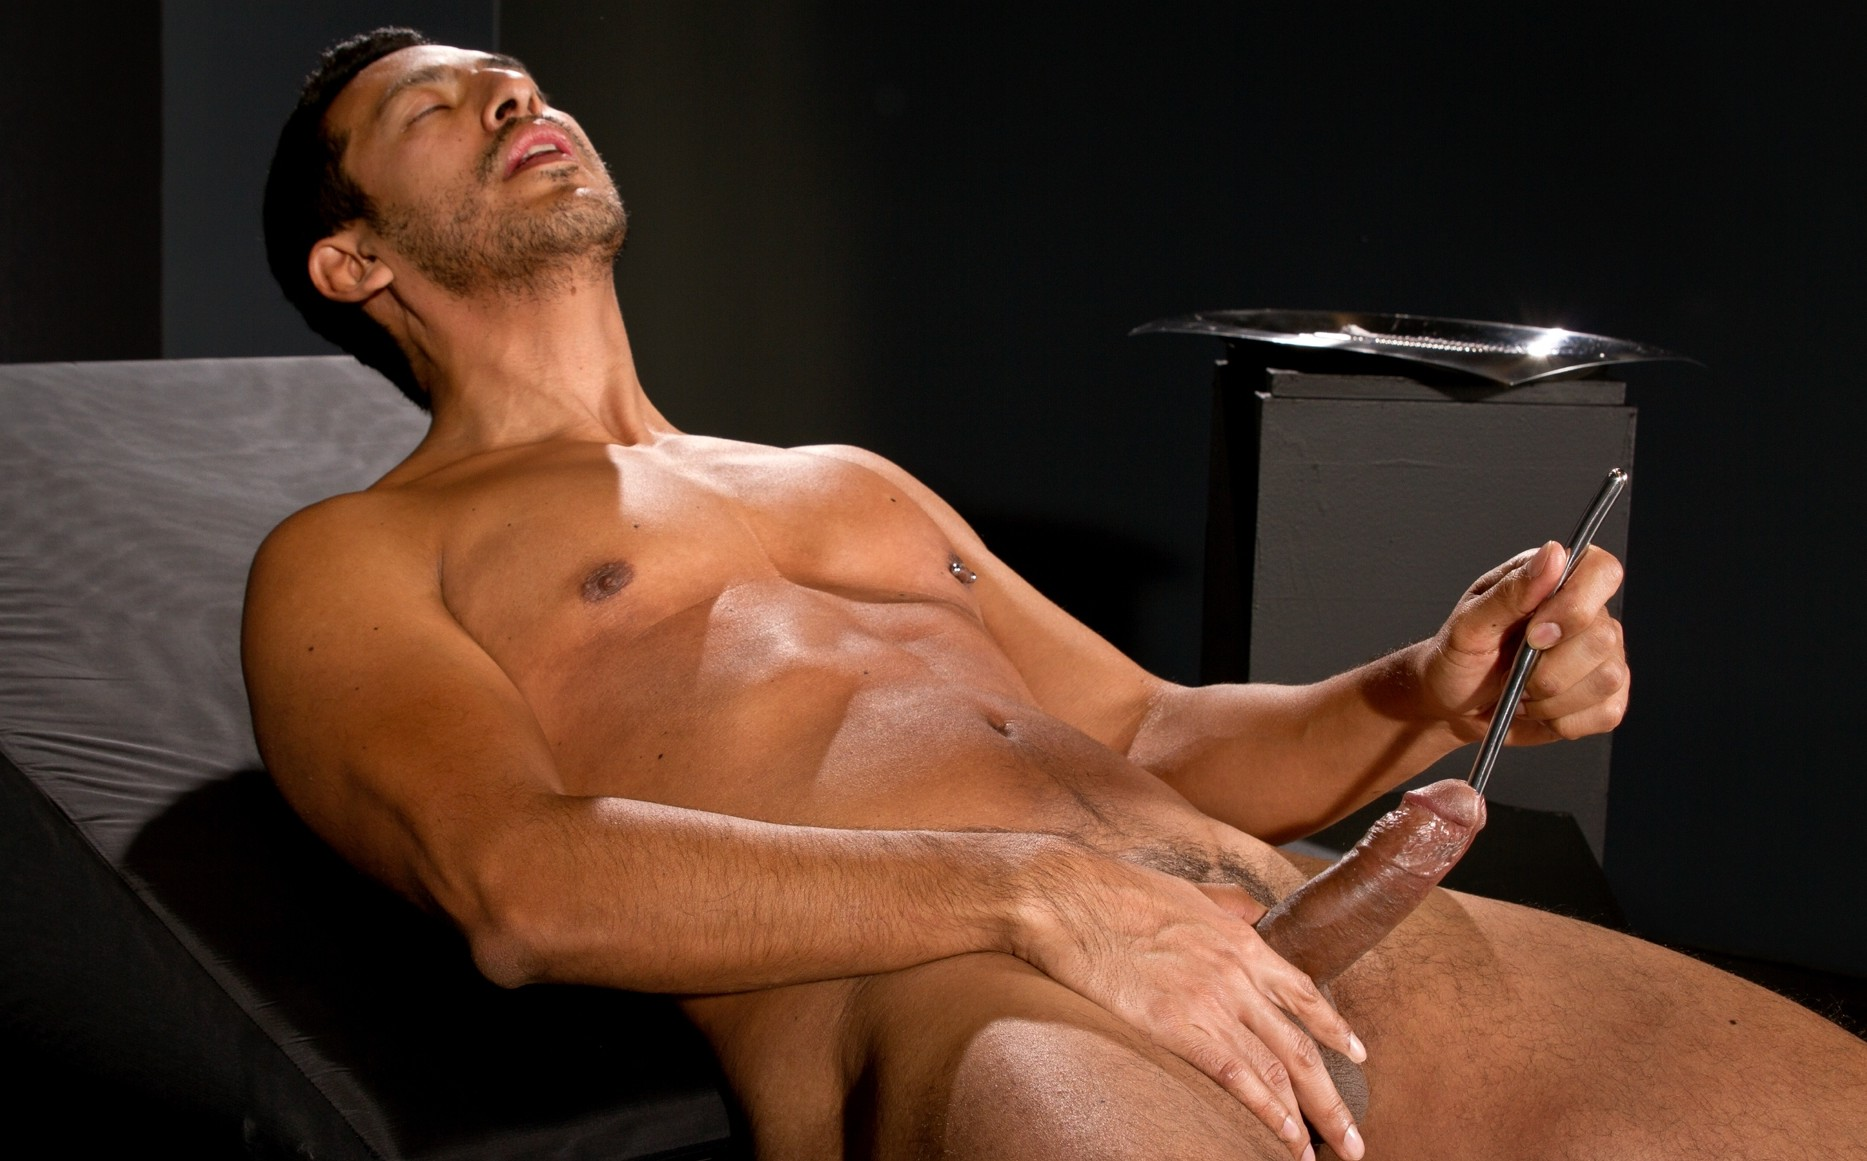 Gay black doctor having sex movie xxx